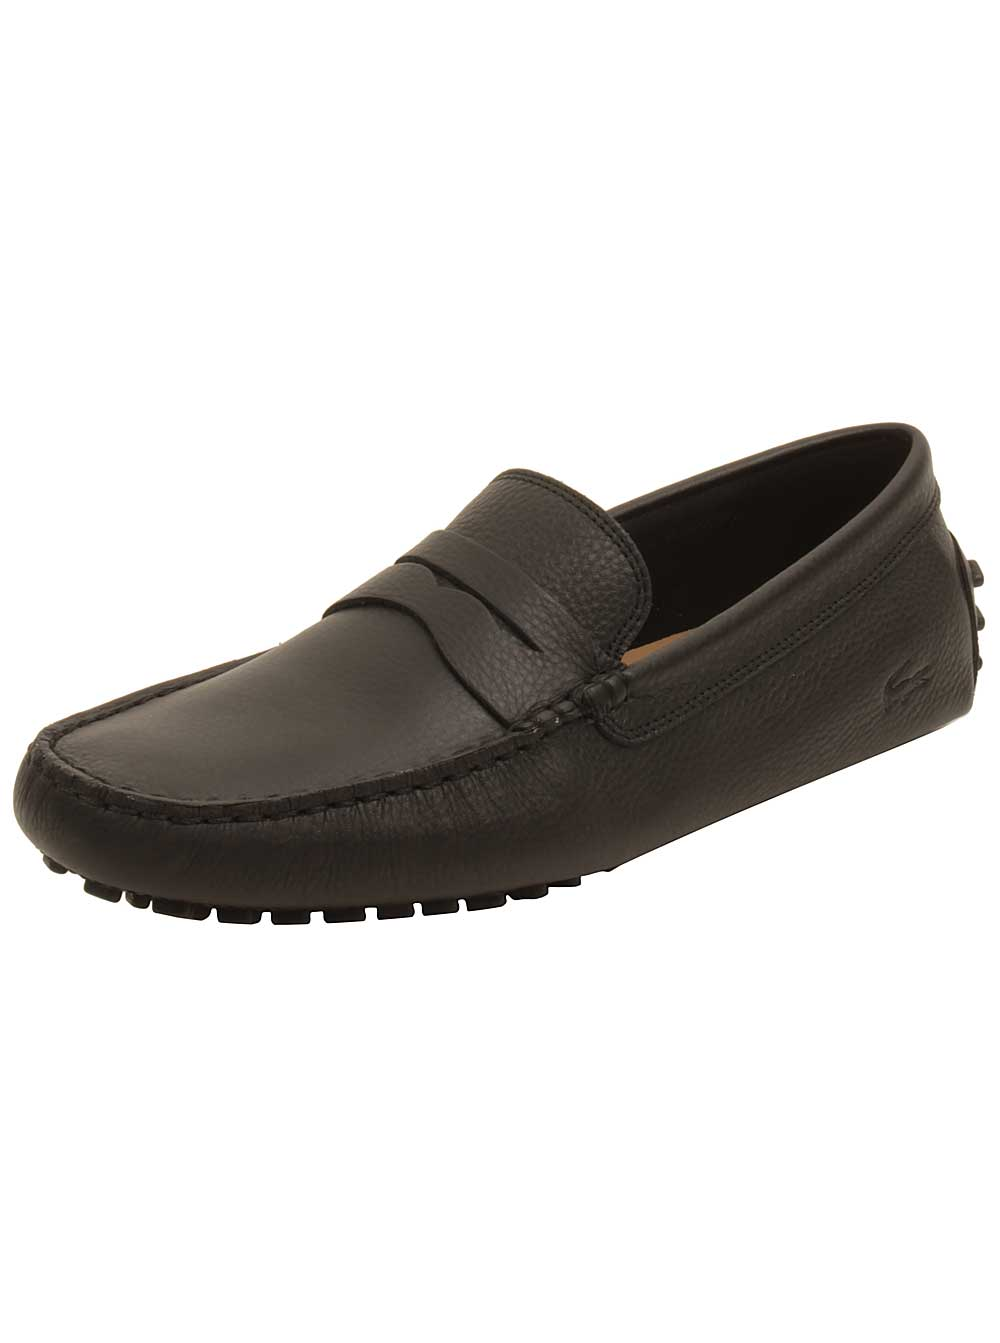 1ecc19b61 Buy Lacoste Men s Concours 118 1 Loafer only  99.95 - ShoesUpdate.PW